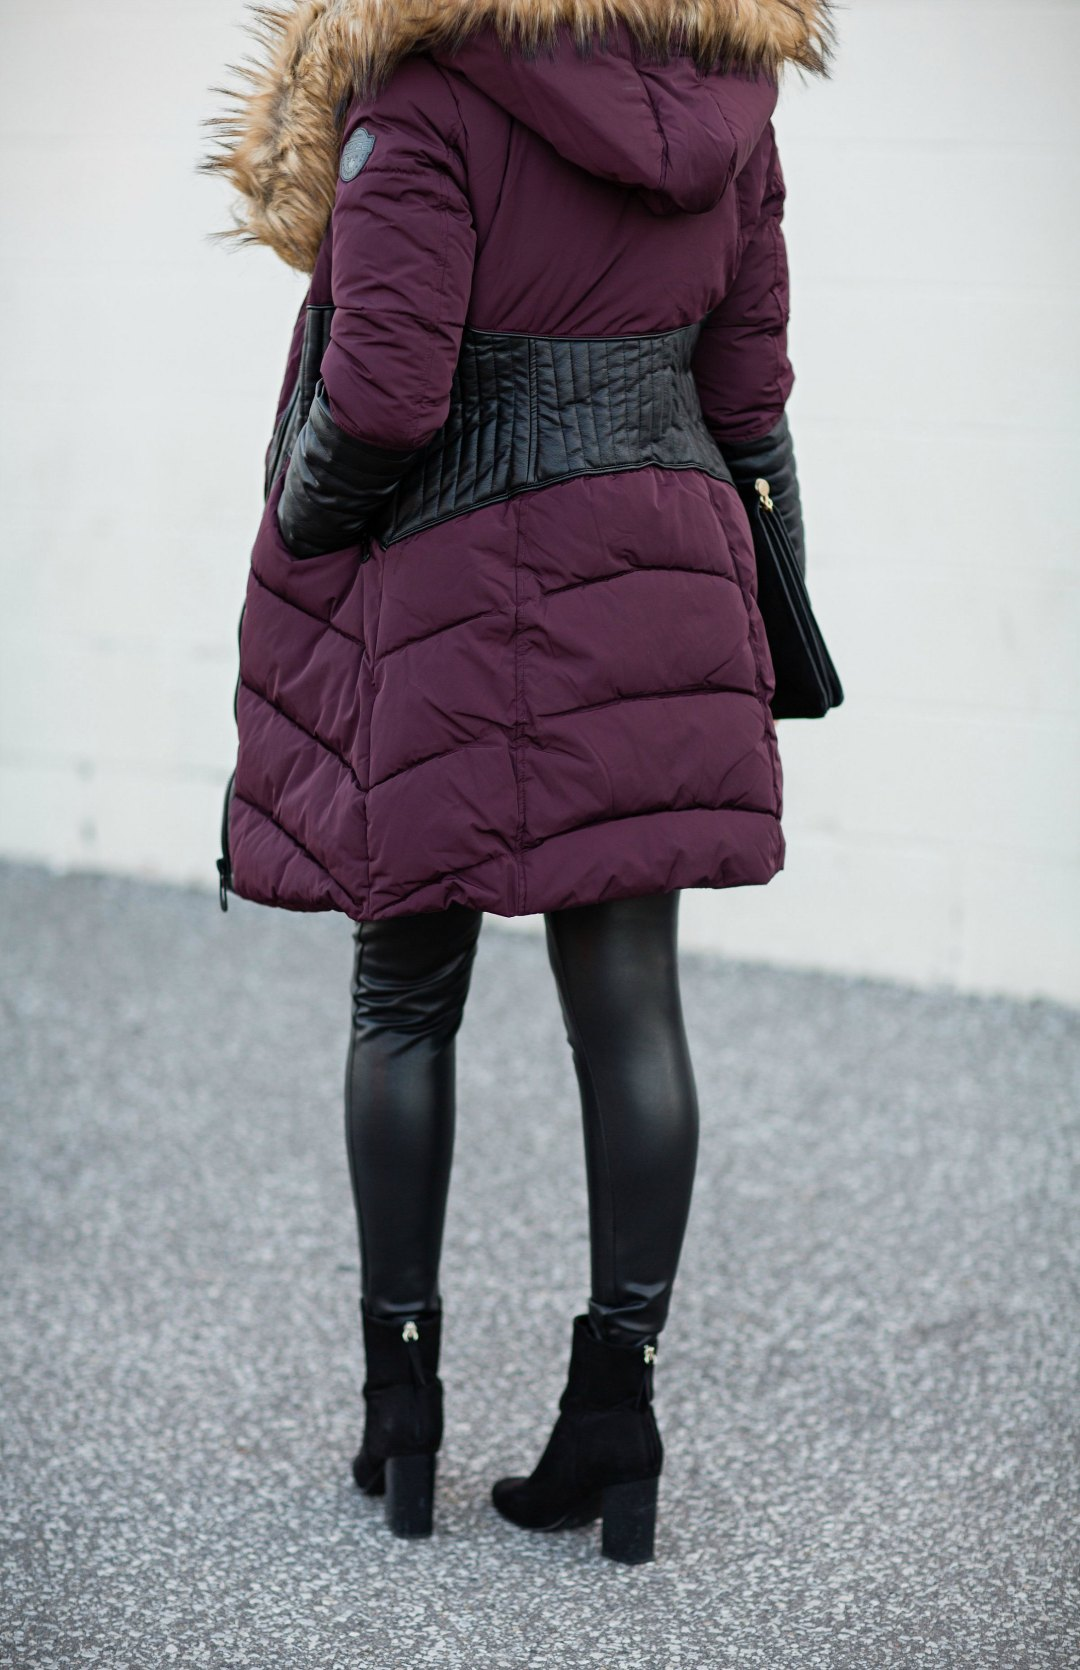 noize-coat-rose-city-style-guide-fall-outfit-leather-leggings-black-booties-celine-caty-sunglasses-fashion-blog-canadian-12